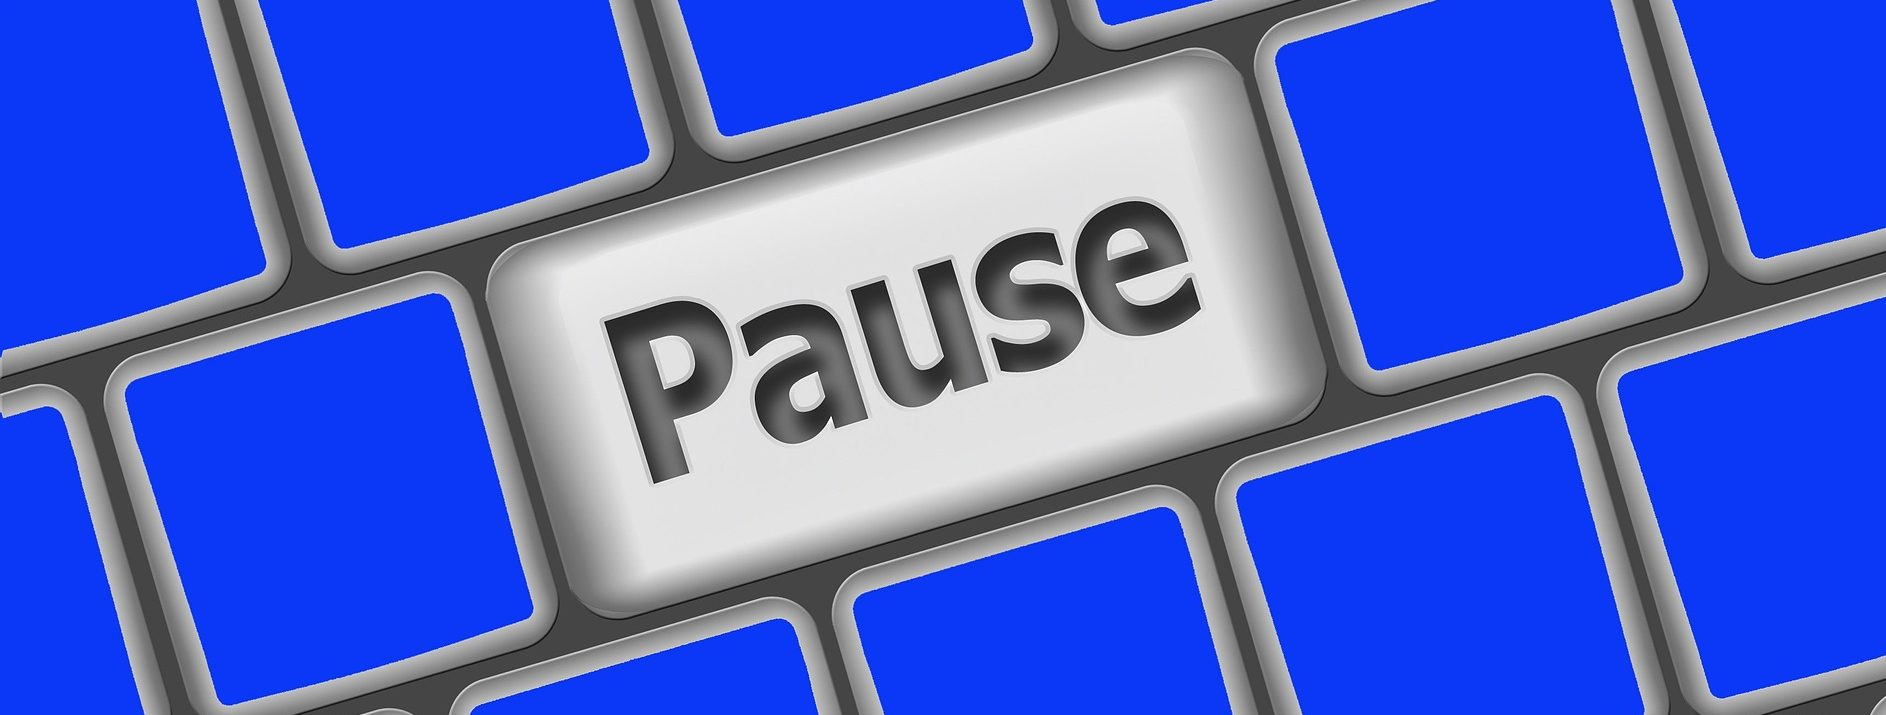 Pause and reassess